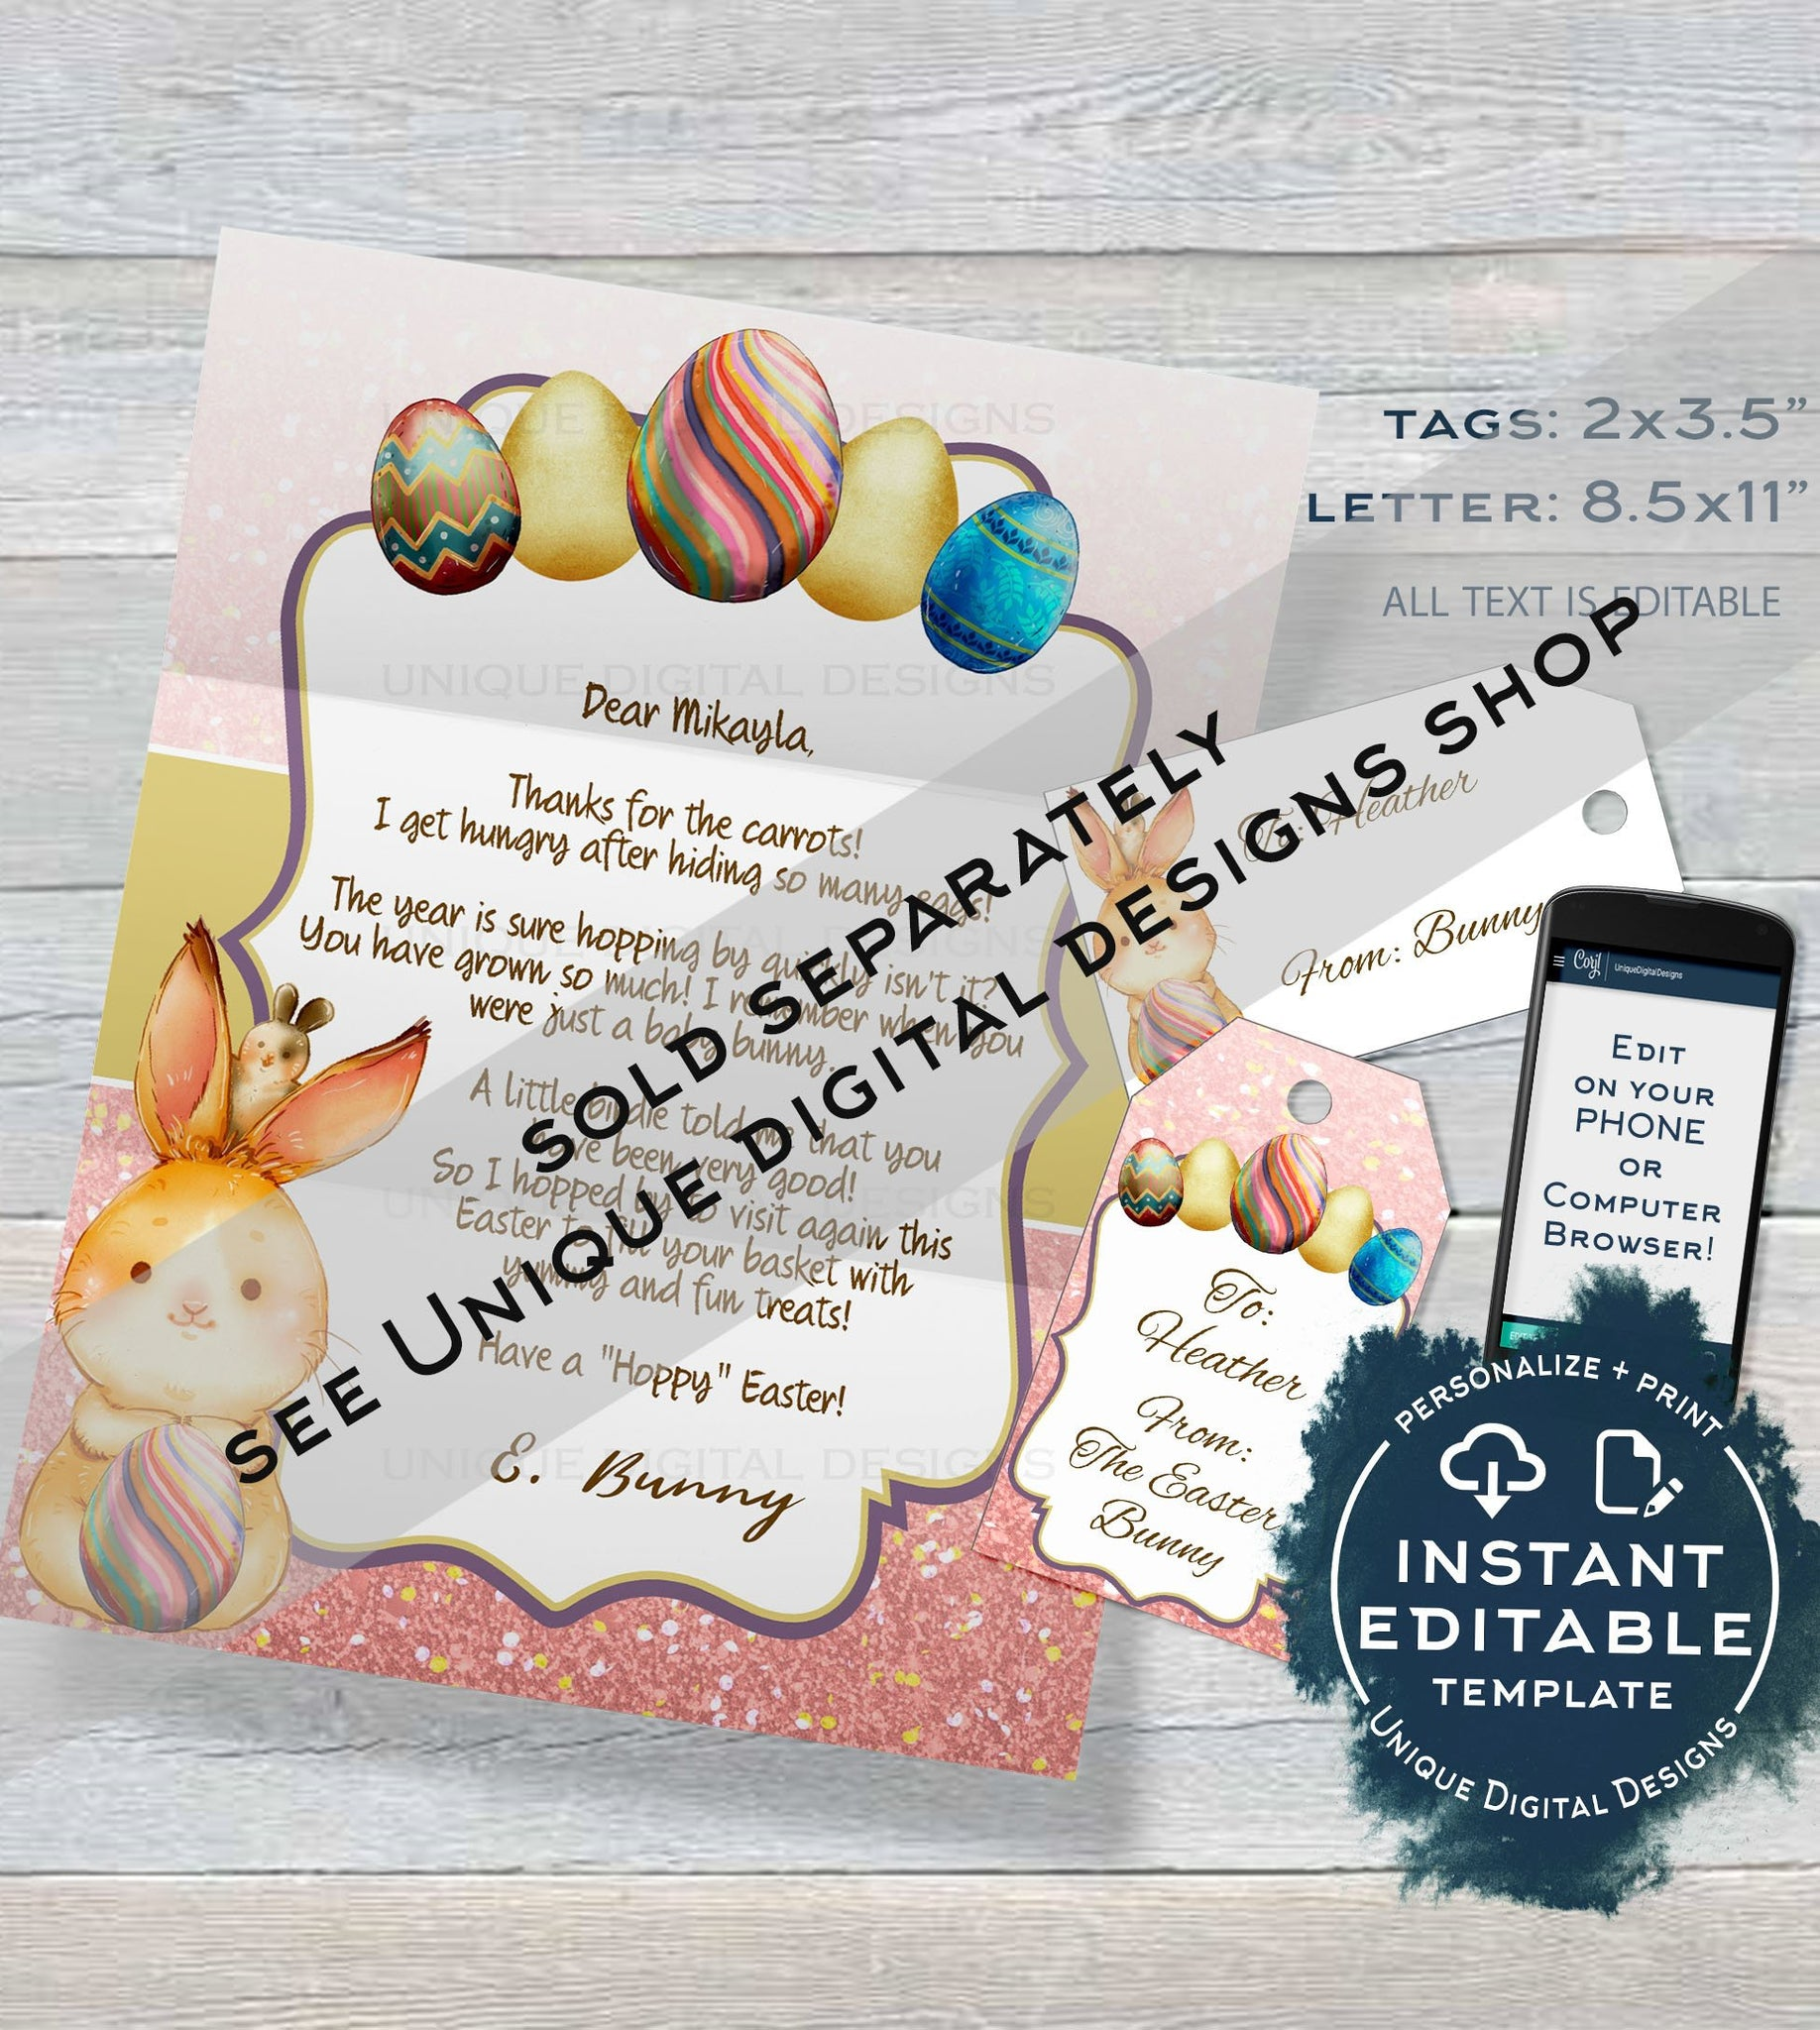 photograph regarding Letter From Easter Bunny Printable named Women Easter Bunny Letter, Editable Letter against the Easter Bunny Observe, Easter Rabbit Entice Information do-it-yourself Customize Printable Quick Down load